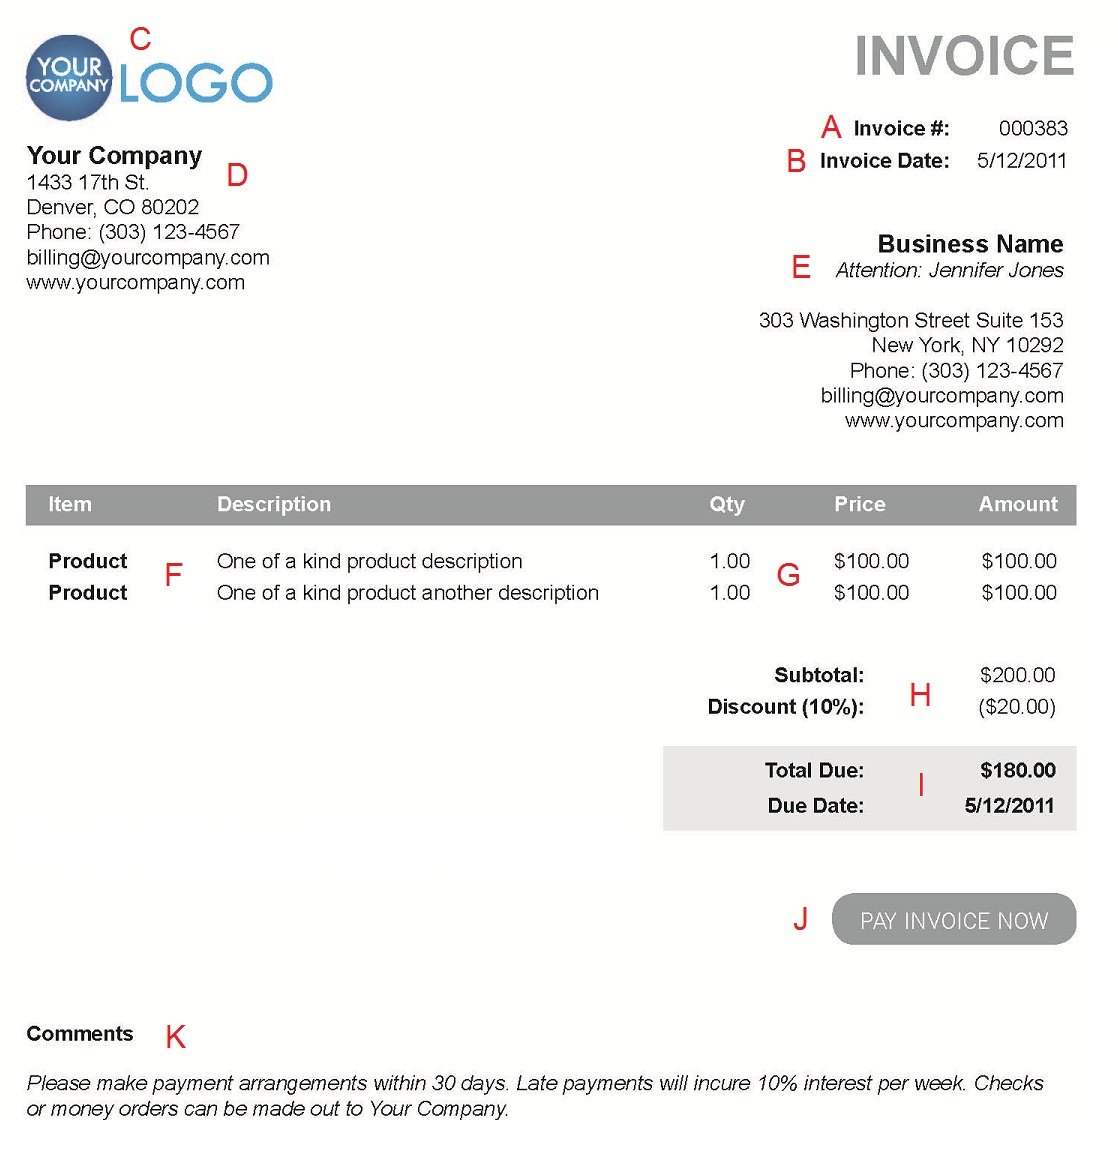 Atvingus  Marvelous The  Different Sections Of An Electronic Payment Invoice With Heavenly A  With Delightful Travel Agent Invoice Also Free Invoice Template Download For Excel In Addition Invoice Style And Sample Of Billing Invoice As Well As Dealer Invoice On New Cars Additionally Invoice Factoring Australia From Paysimplecom With Atvingus  Heavenly The  Different Sections Of An Electronic Payment Invoice With Delightful A  And Marvelous Travel Agent Invoice Also Free Invoice Template Download For Excel In Addition Invoice Style From Paysimplecom